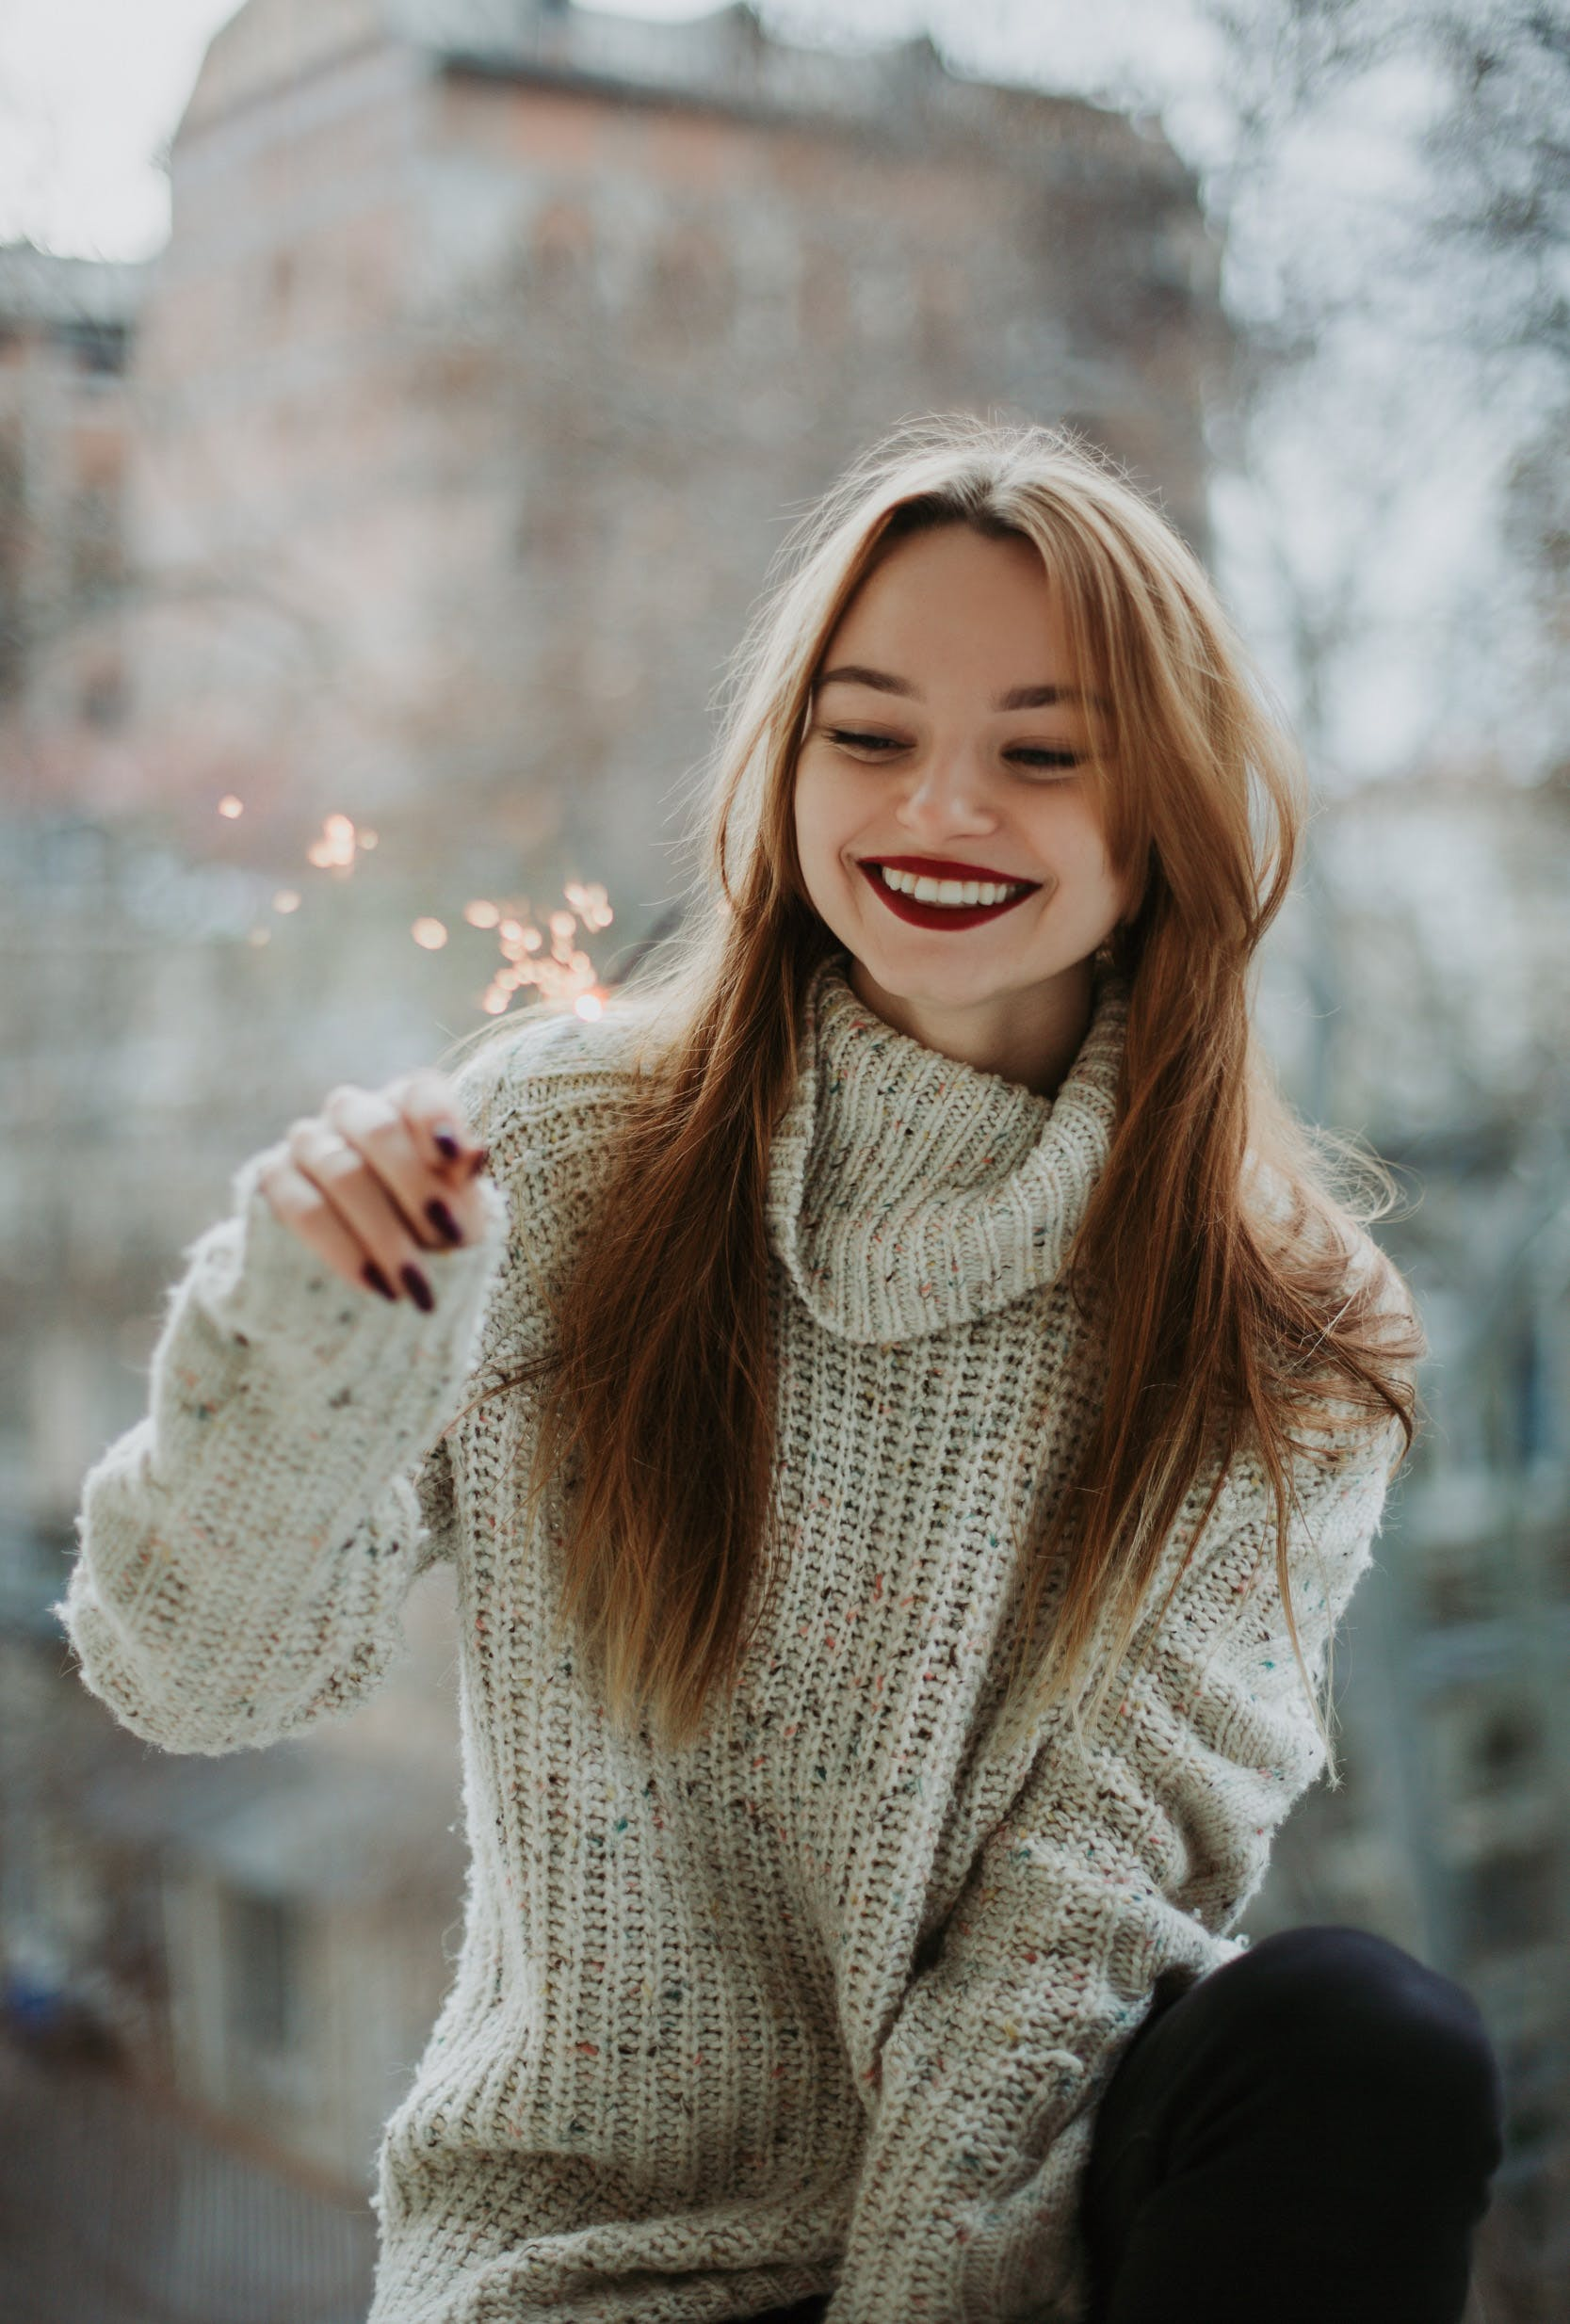 Woman Wears White Knit Turtleneck Long-sleeved Shirt With Blonde Hair